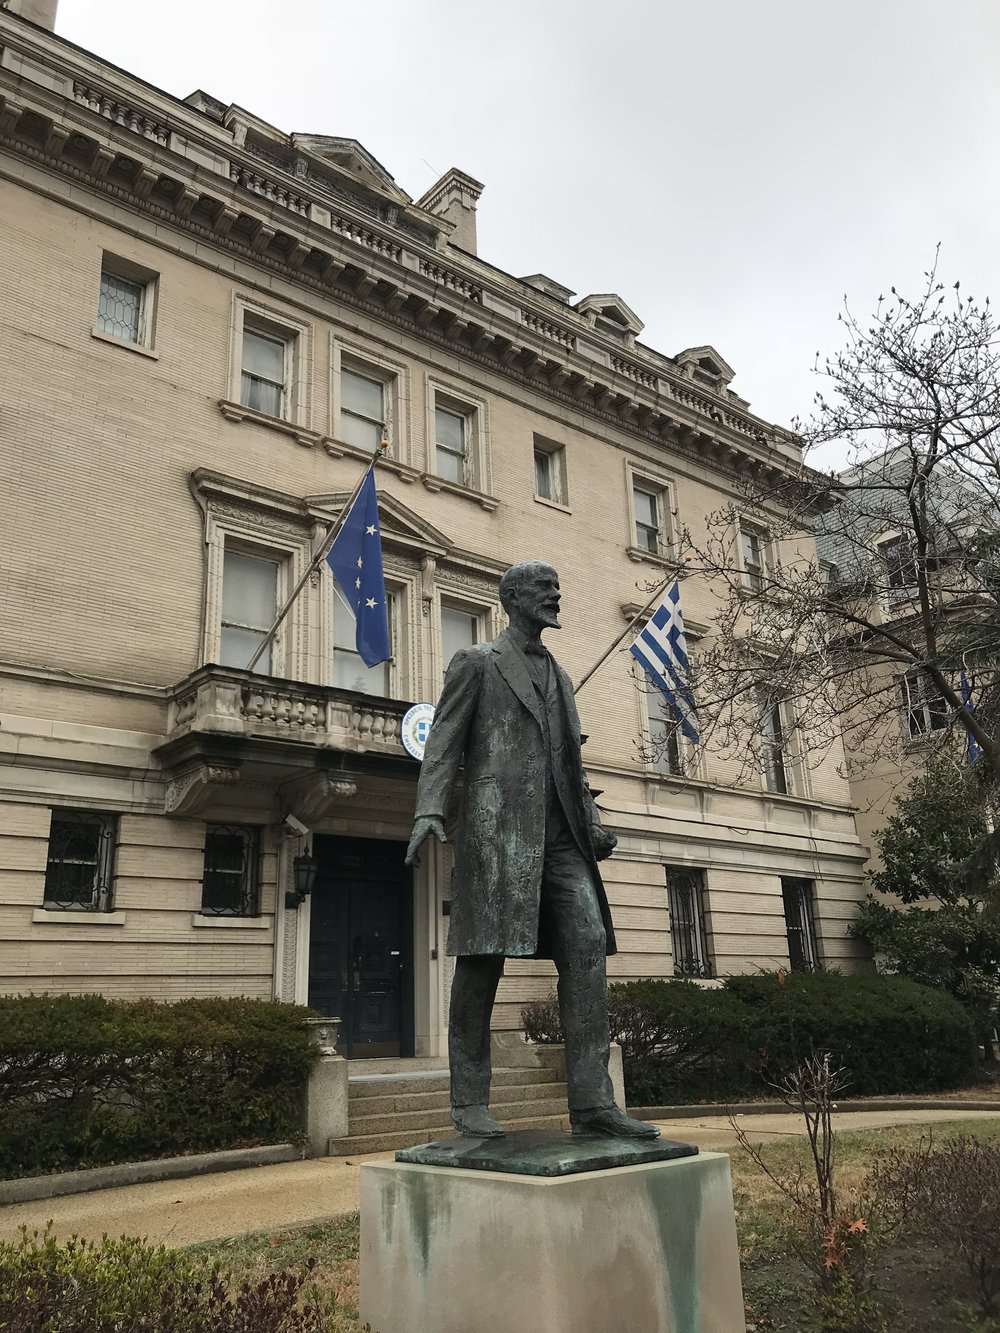 Statue of former Prime Minister Venizelos outside the Embassy of Greece.